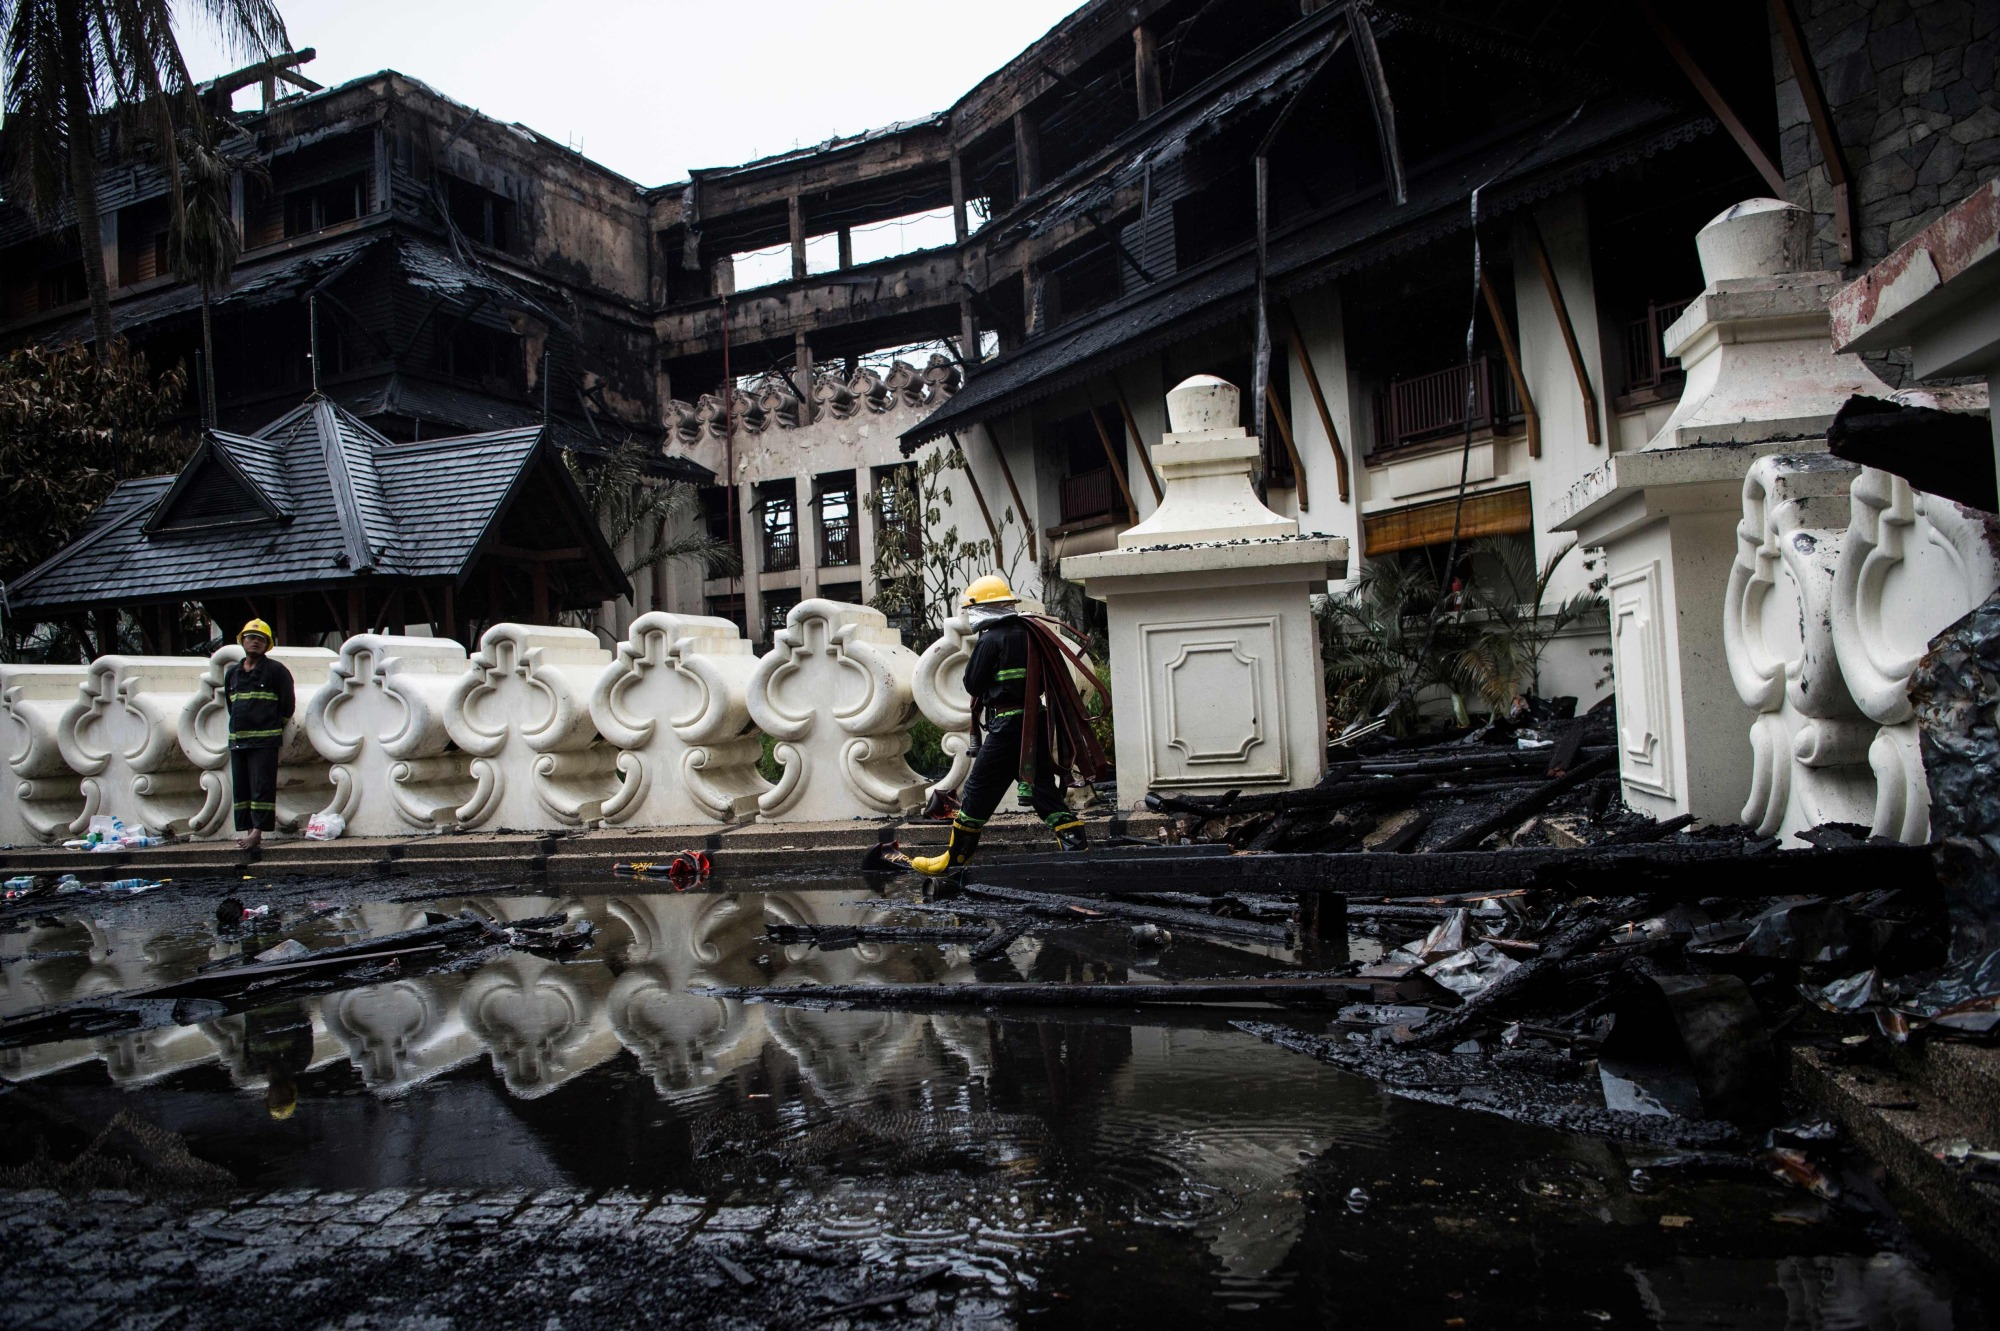 Firefighters work at the scene after a fire guts the Kandawgyi Palace hotel in Yangon on Thursday. | AFP-JIJI